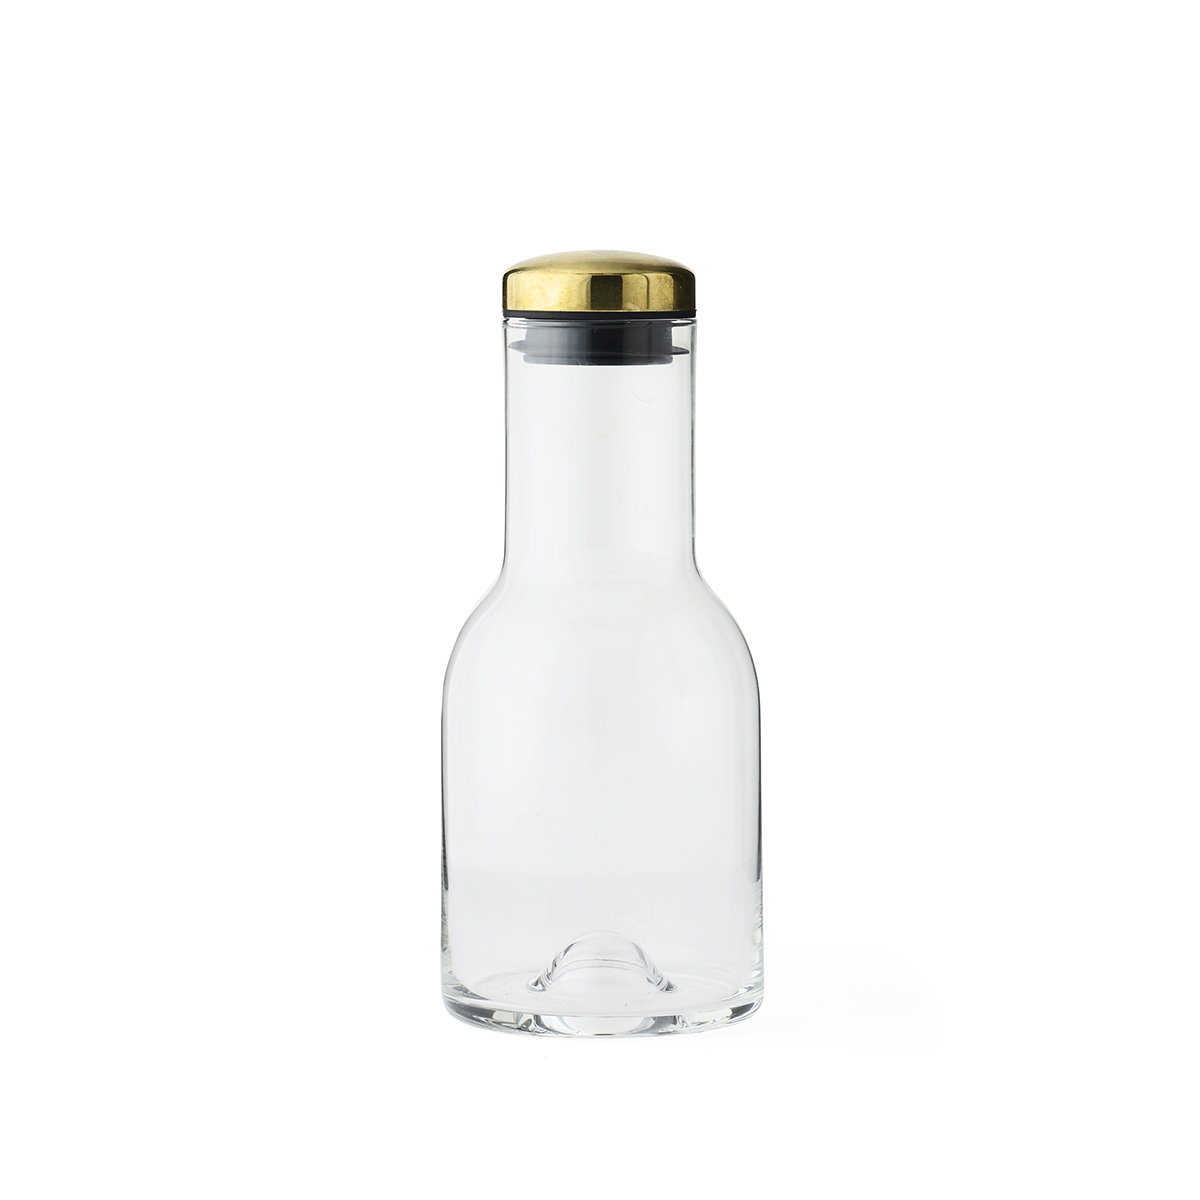 Menu Water Bottle with Brass Lid 0.5L 黃銅 玻璃水瓶 小尺寸